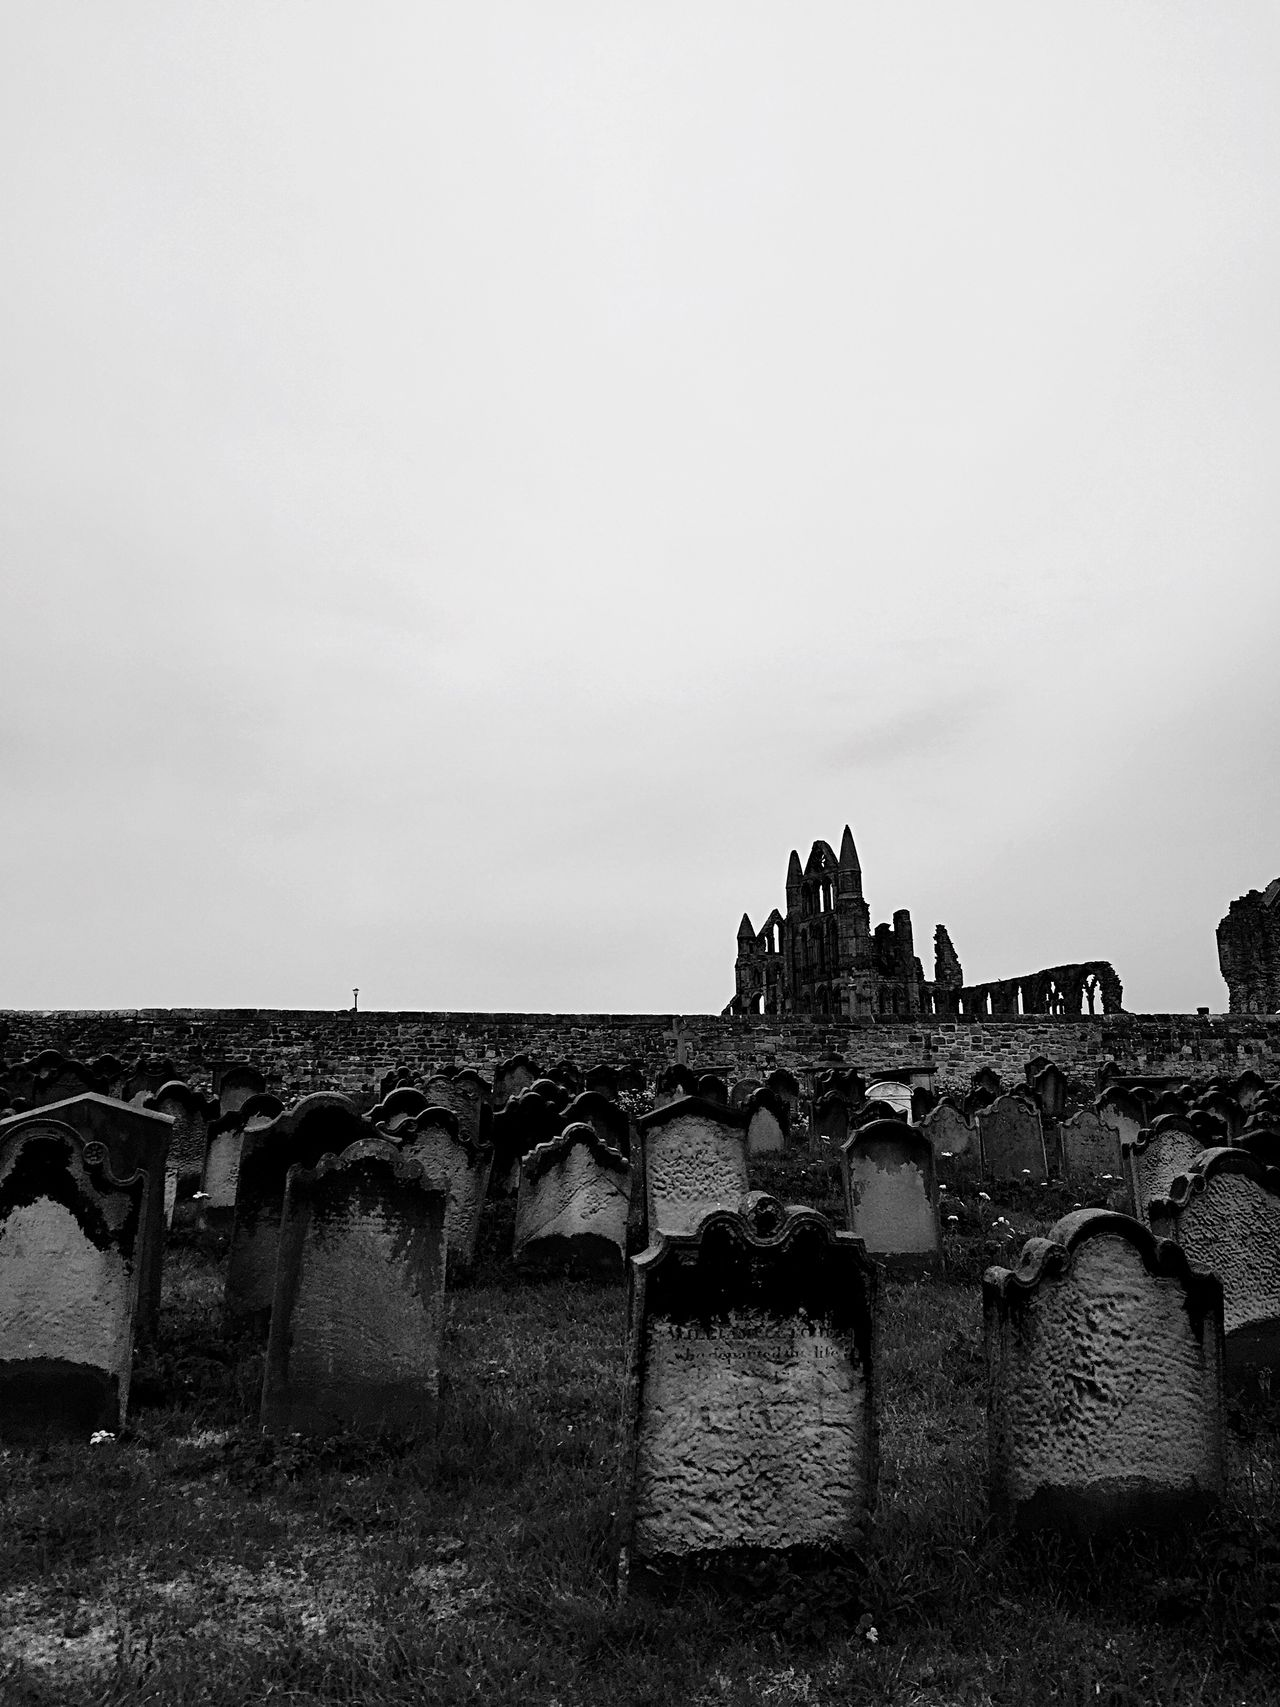 Dracula From Where I Stand Blackandwhite Photography Whitby Black & White Churchyard Headstones Whitbyabbey